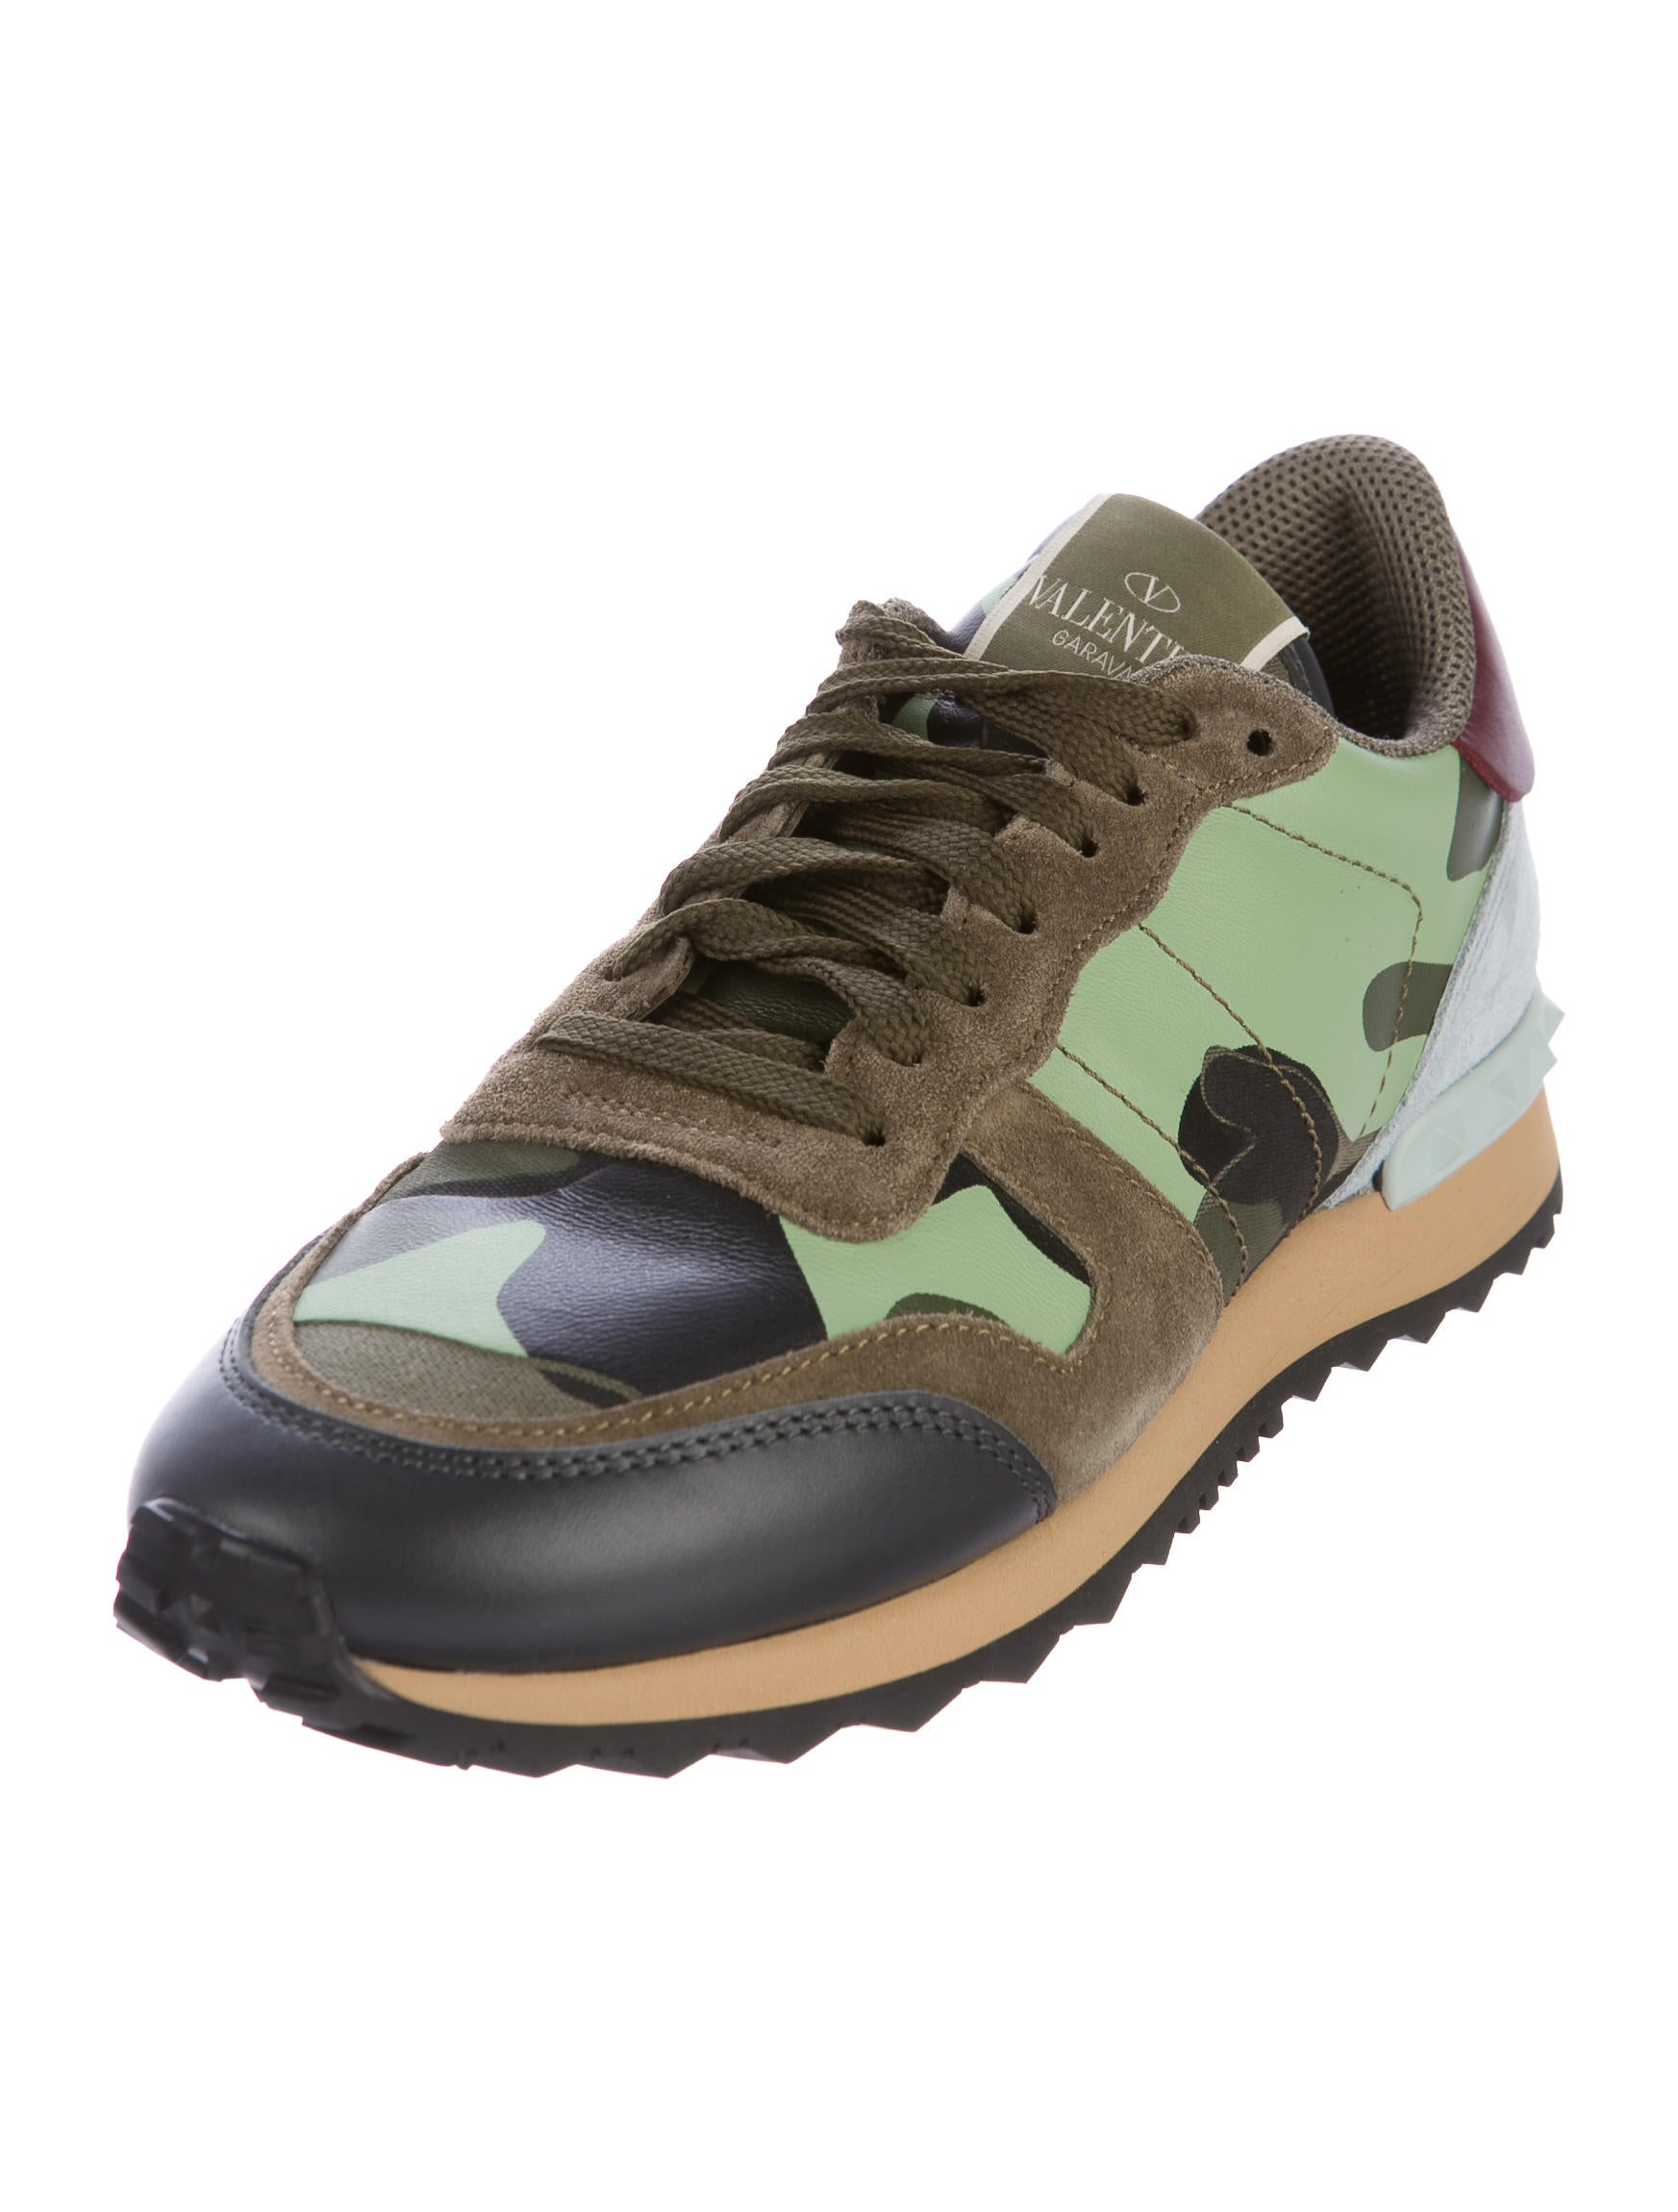 valentino camouflage rockrunner sneakers shoes val73037 the realreal. Black Bedroom Furniture Sets. Home Design Ideas